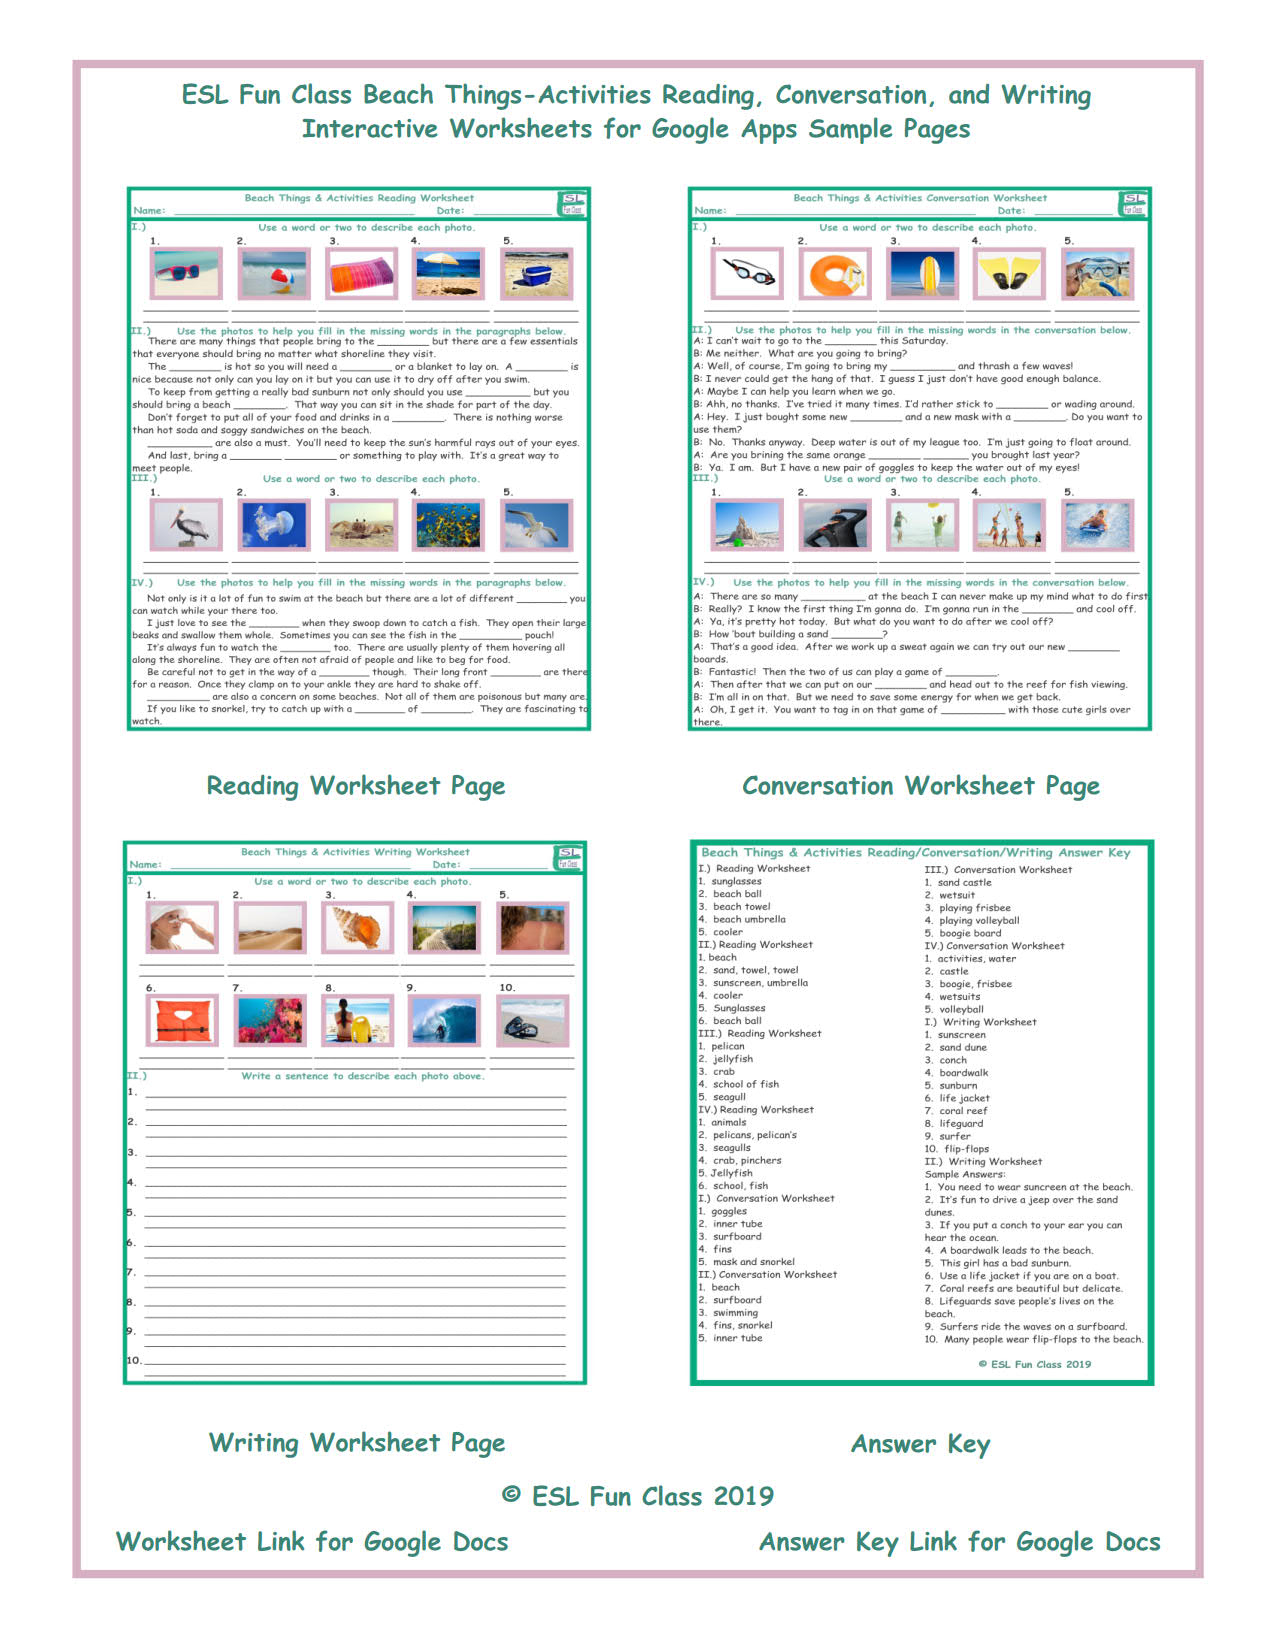 Beach Things-Activities Read-Converse-Write Interactive Worksheets for  Google Apps